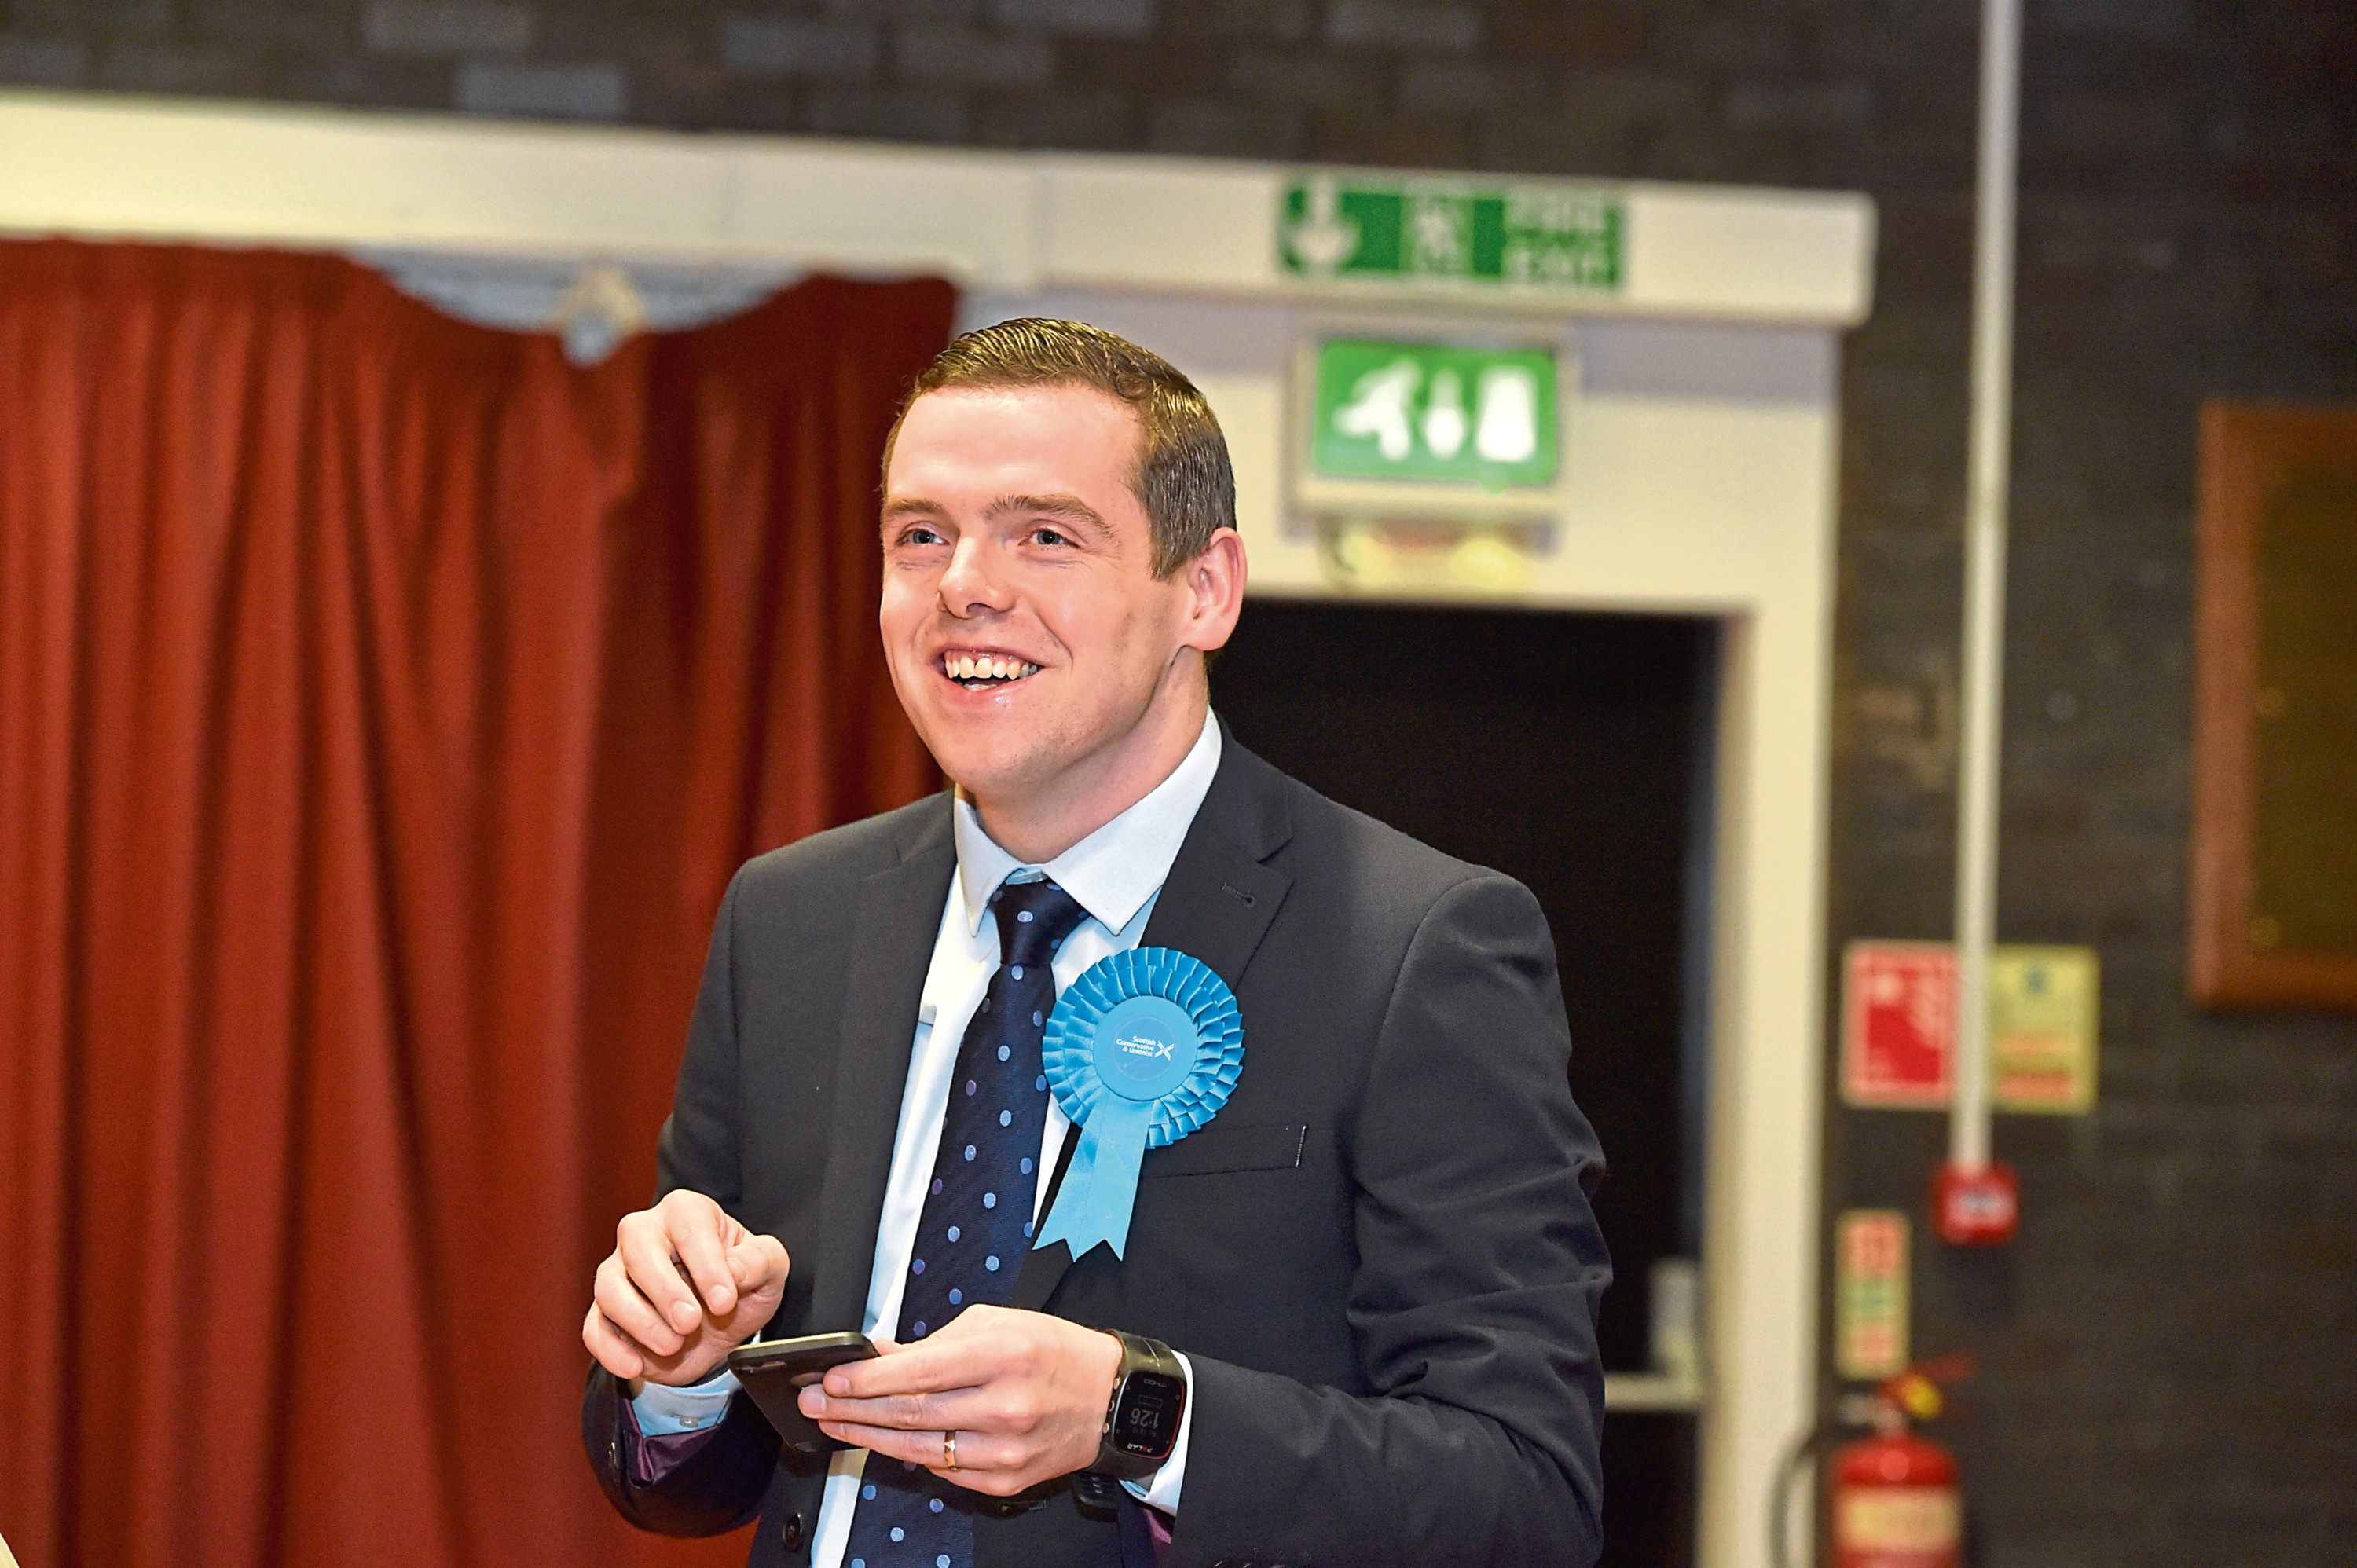 Moray MP Douglas Ross has resigned as minister after Dominic Cummings breach of lockdown.